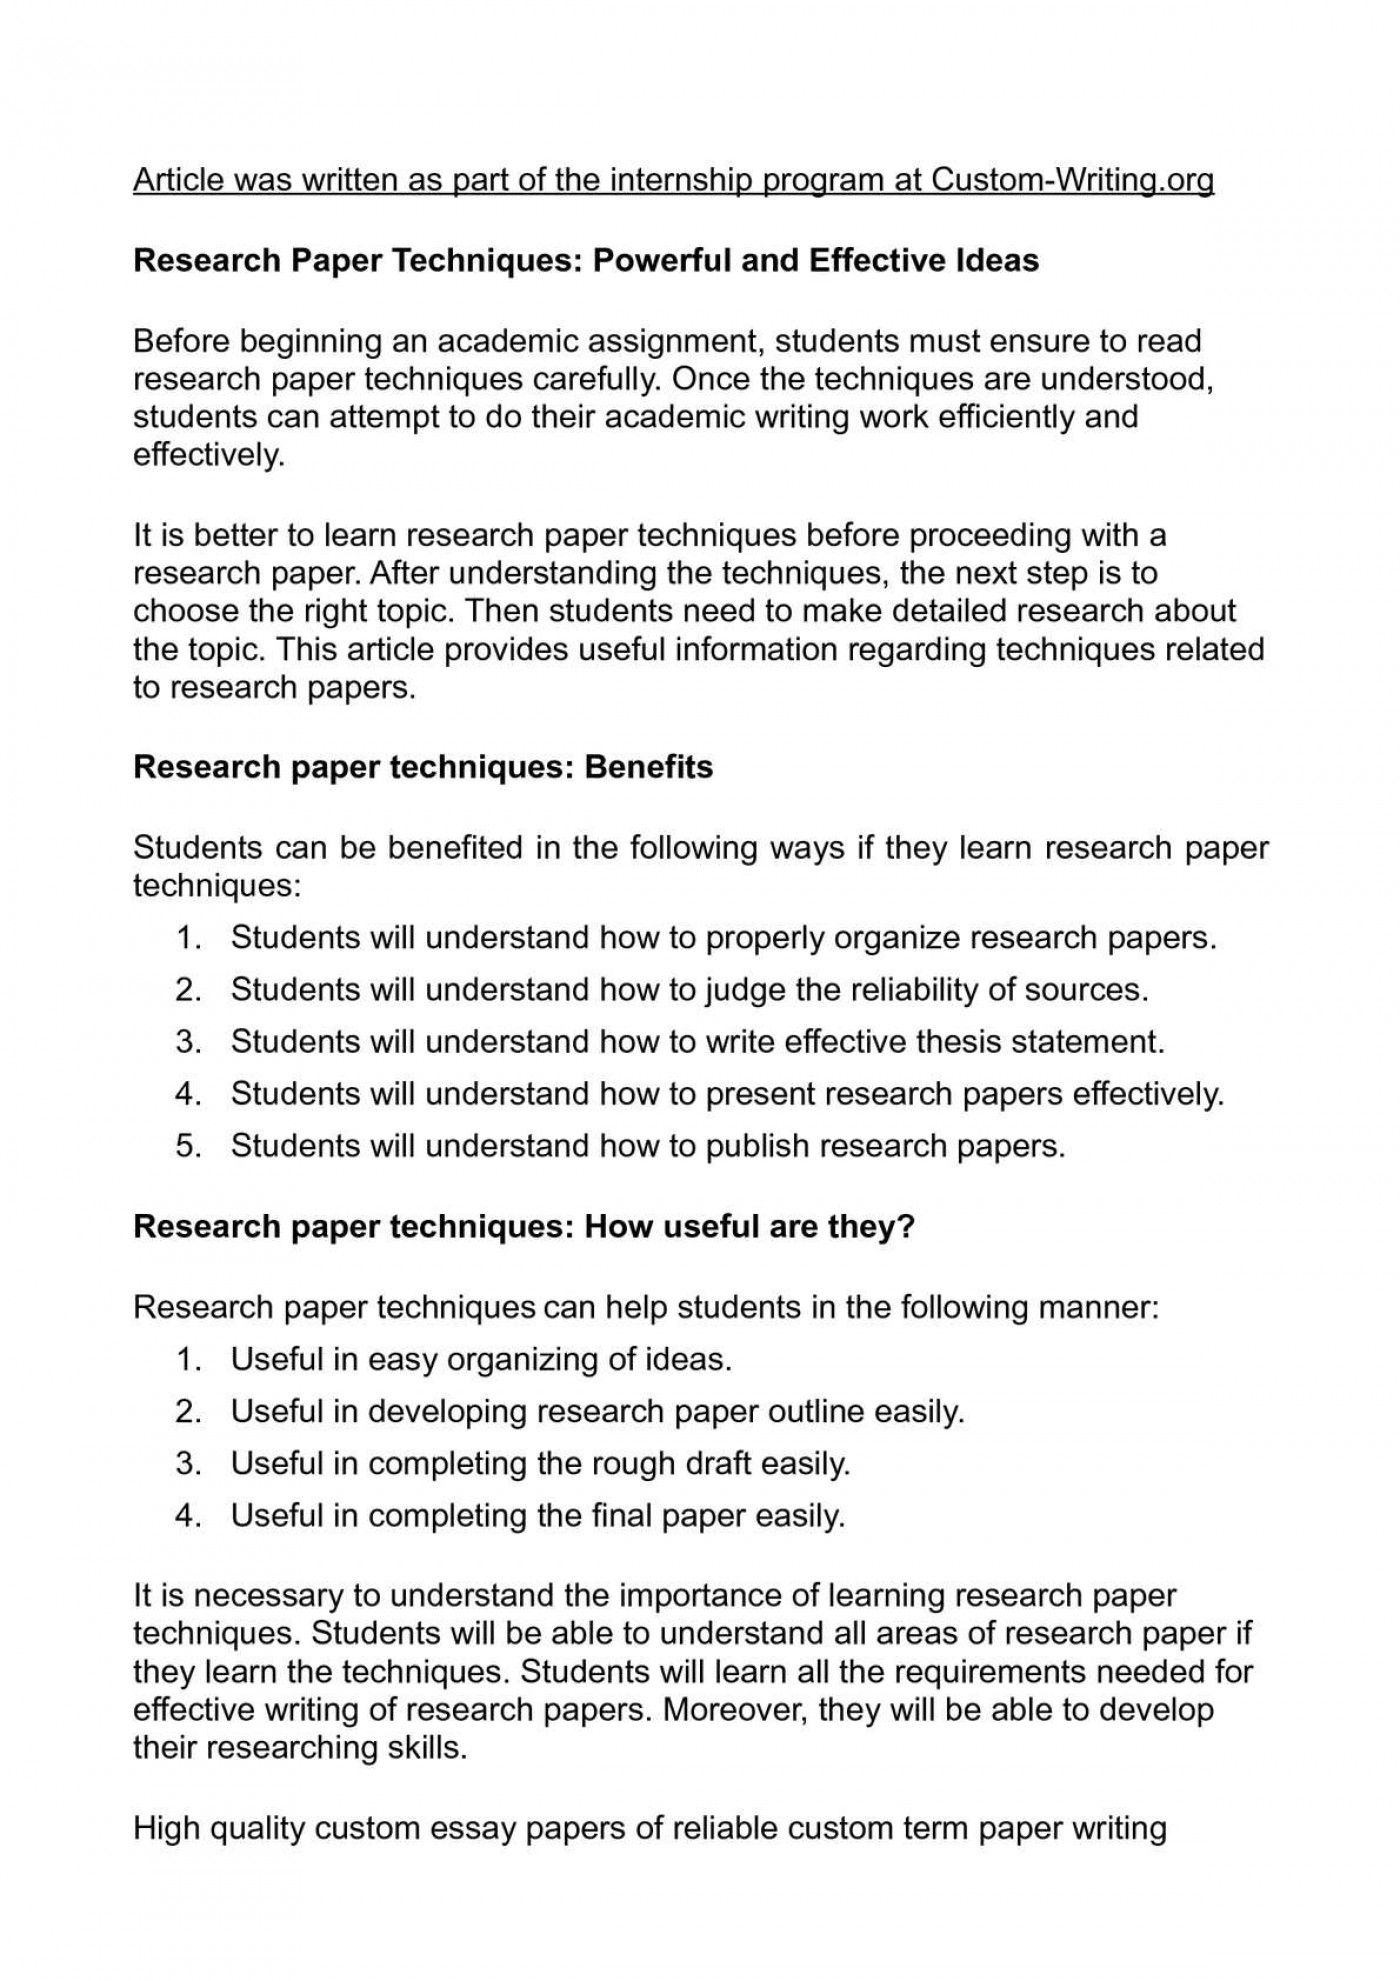 003 Ideas For Research Paper Fascinating Papers In Computer Science Middle School Topic High 1400